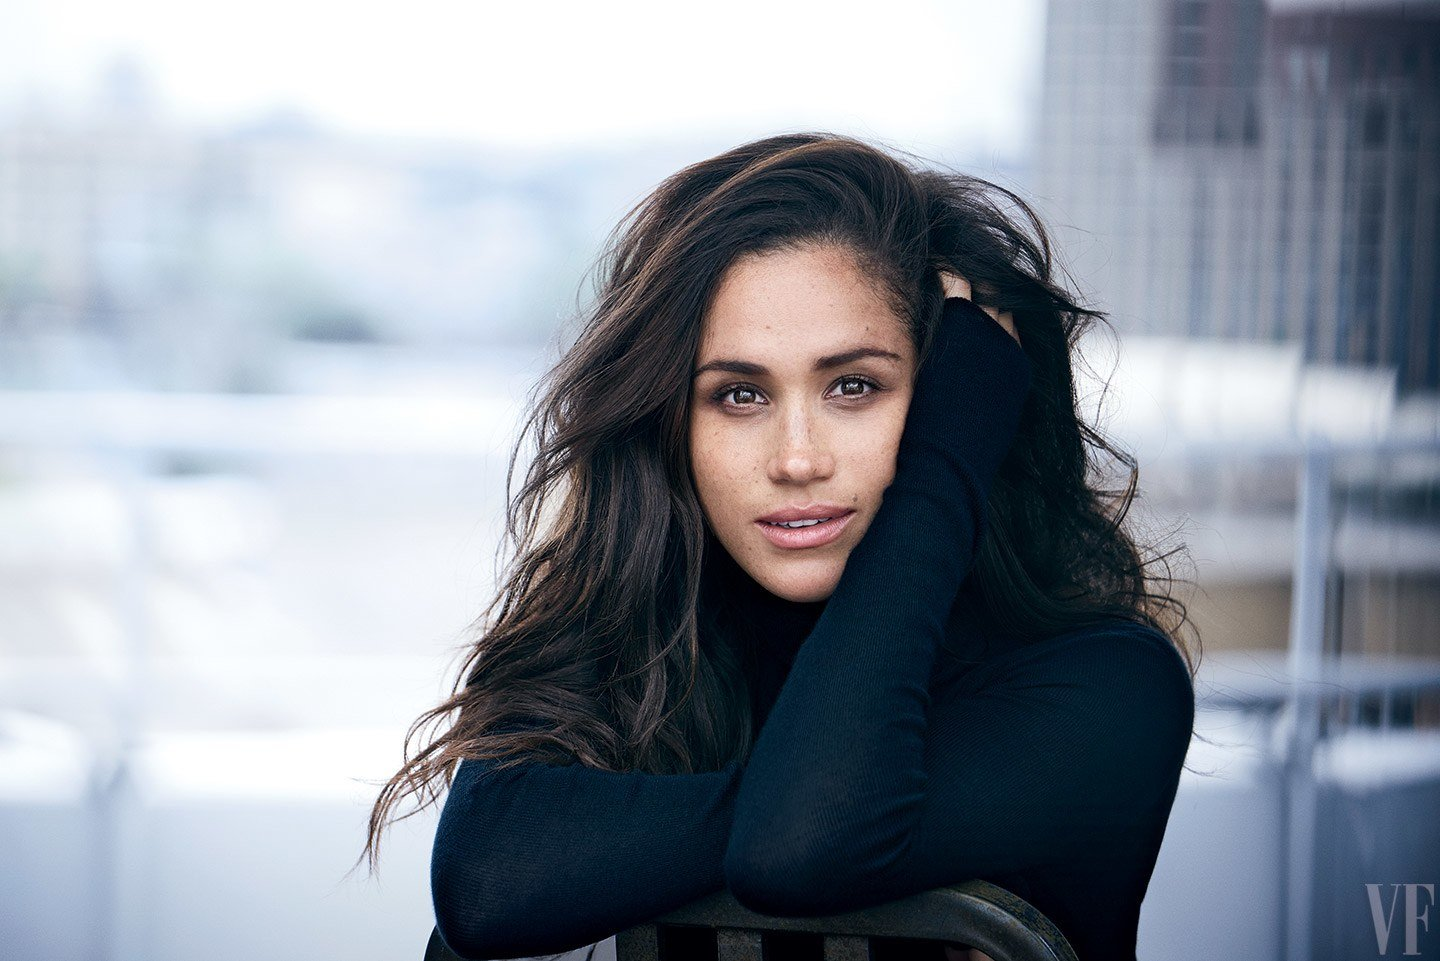 prince harry and meghan markle 2 meghan markle 1017 ss02 - Seven Fascinating Facts About Prince Harry And His Fiancé Meghan Markle